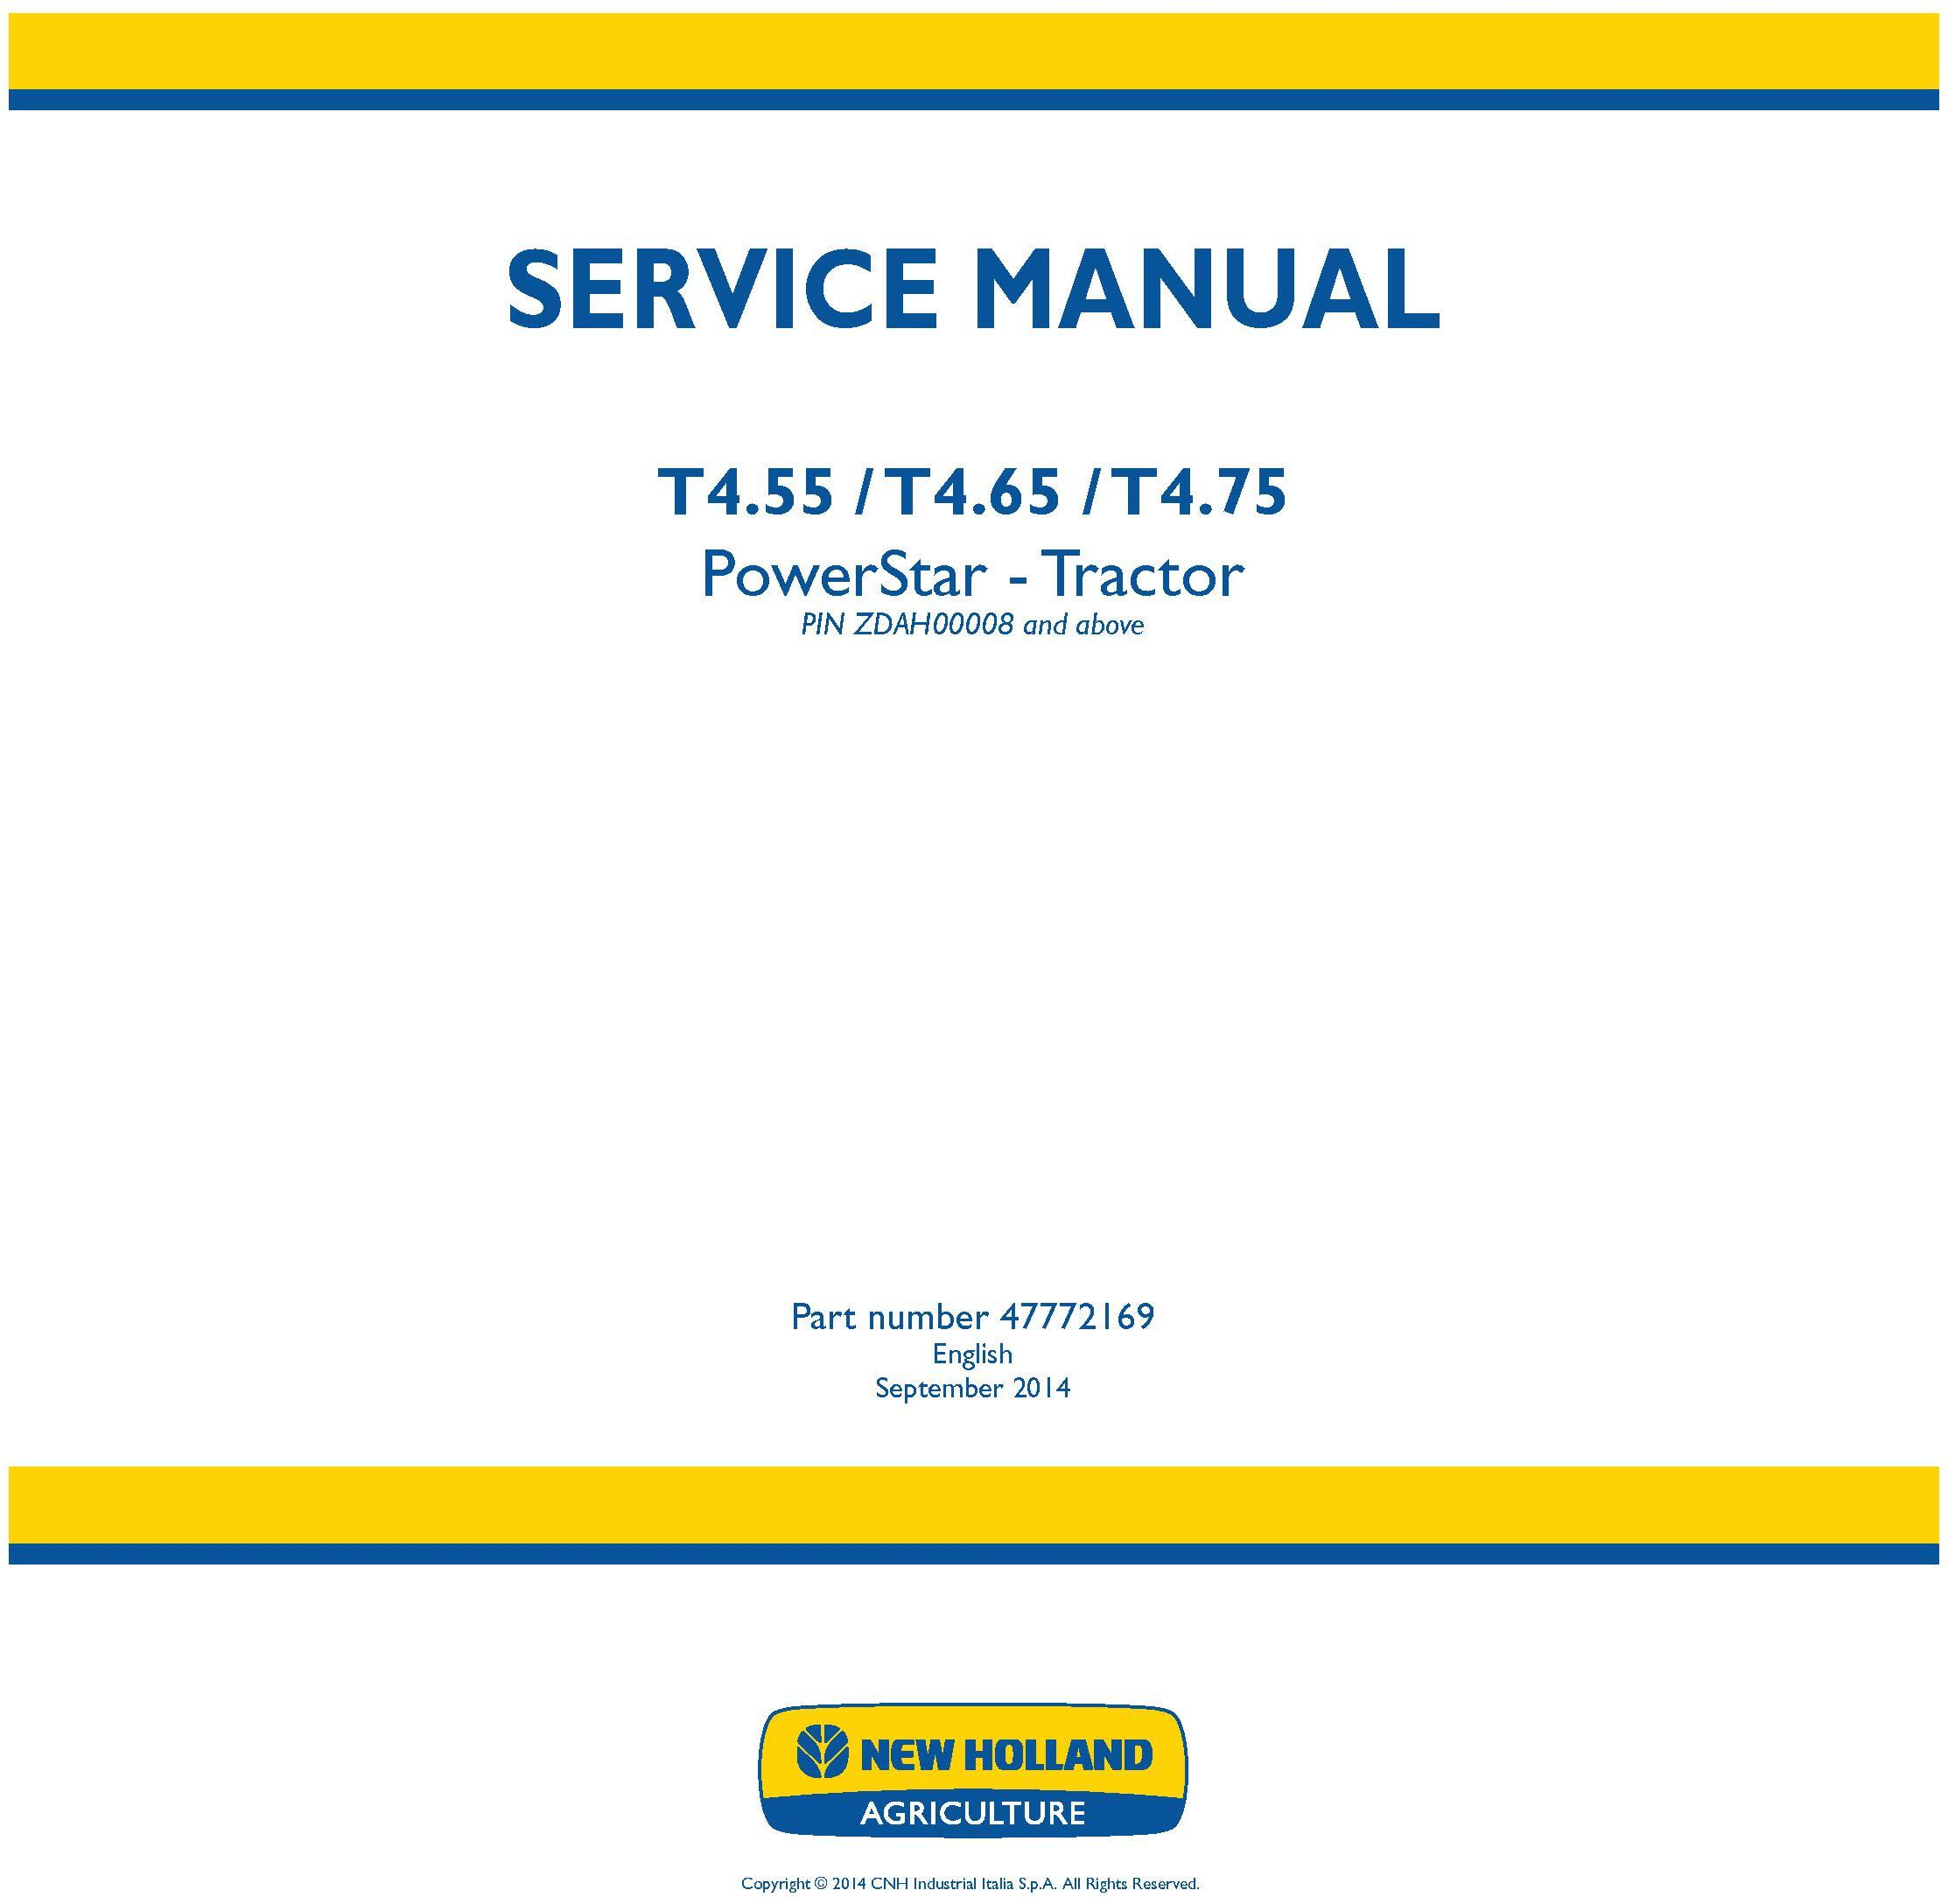 New Holland T4.55, T4.65, T4.75 PowerStar Tier4B Final Tractor Service Manual - 19411